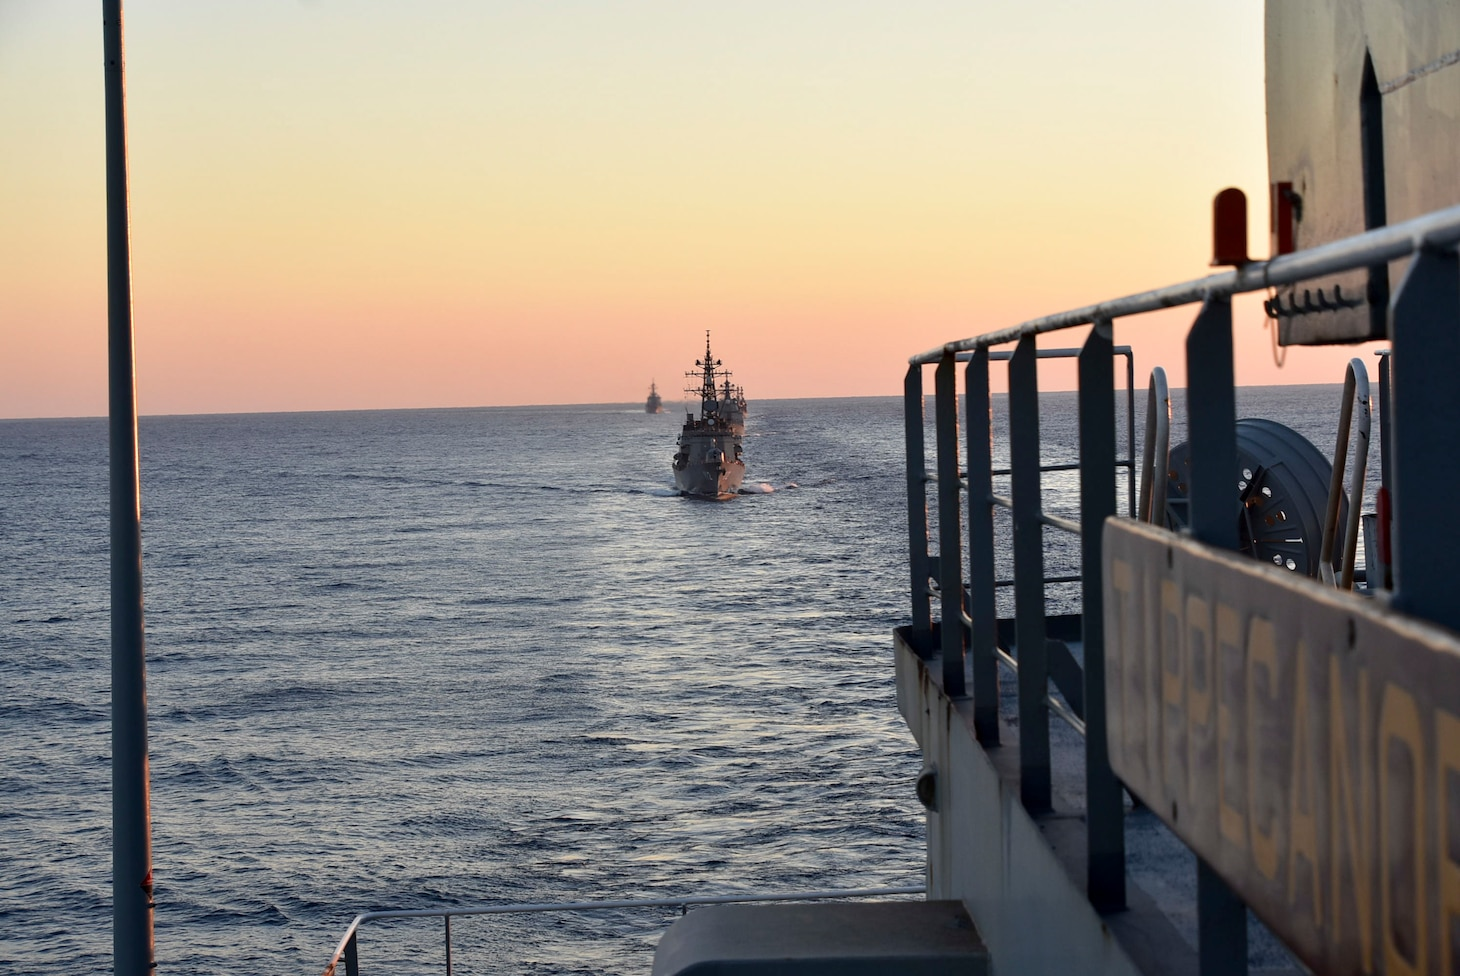 PHILIPPINE SEA (Oct. 25, 2020) – The Royal Canadian Navy Halifax-class frigate HMCS Winnipeg (FFH 338) approaches the U.S. Navy Military Sealift Command Henry J. Kaiser-class fleet replenishment oiler USNS Tippecanoe (T-AO 199) in preparation for an underway replenishment prior to participating in Keen Sword. Keen Sword is a joint, bilateral, biennial field-training exercise involving U.S. military and Japan Self-Defense Force personnel, designed to increase combat readiness and interoperability of the Japan-U.S. alliance. (US. Navy photo by Christopher Bosch)